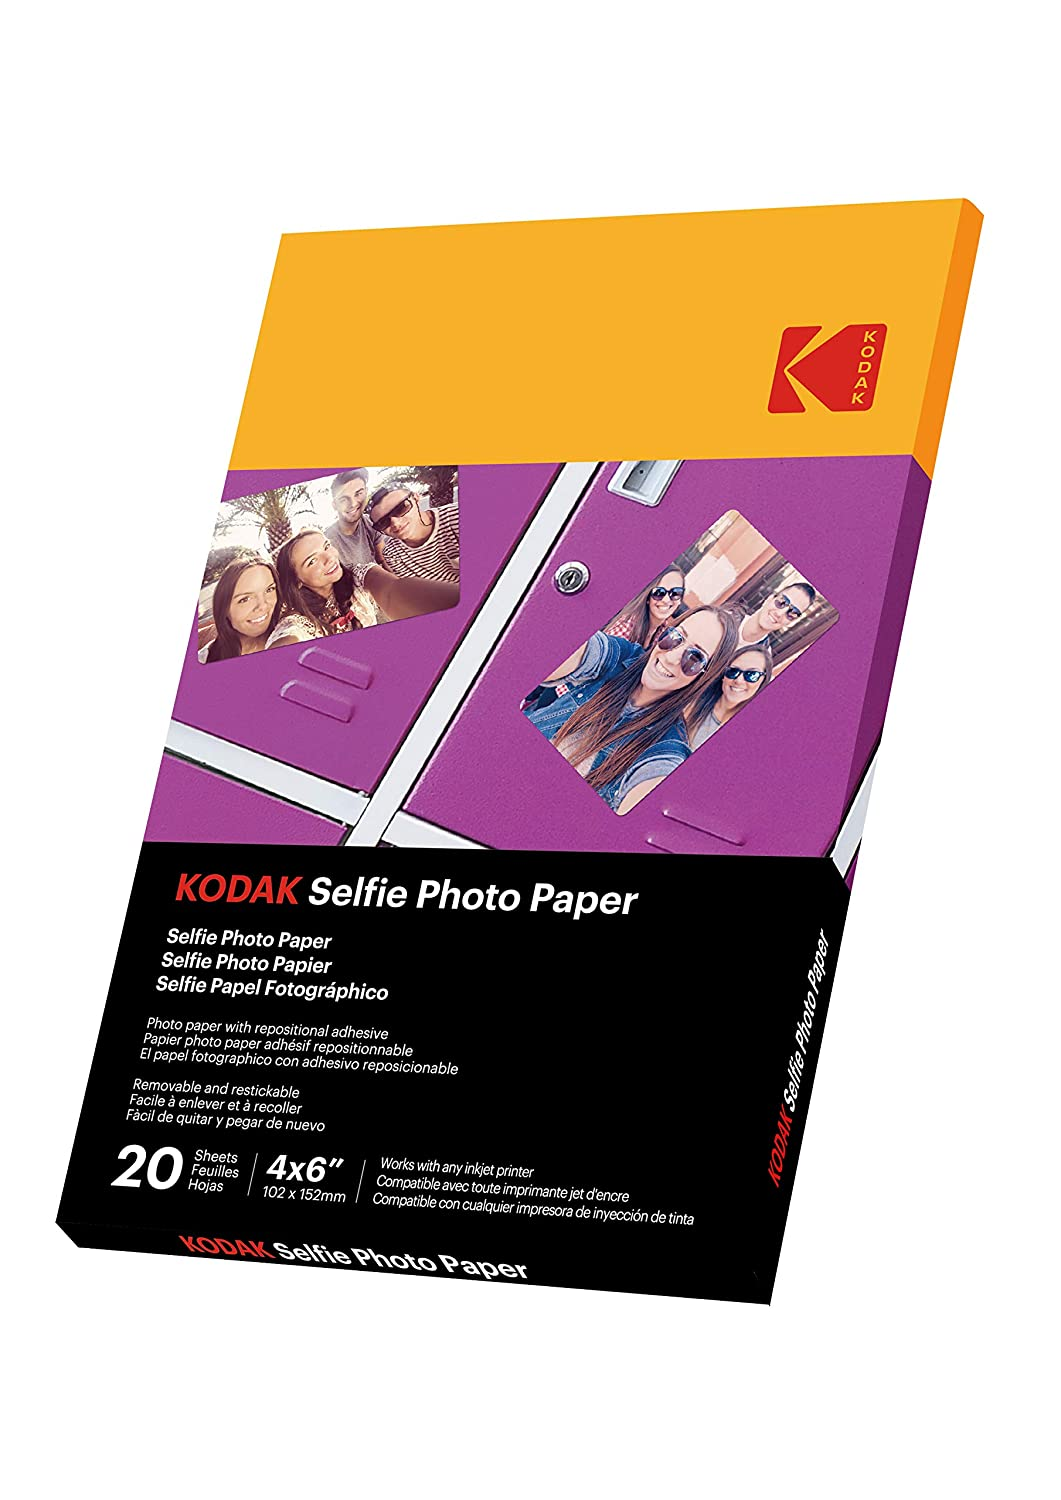 Amazon.com : KODAK Selfie Photo Paper : Office Products